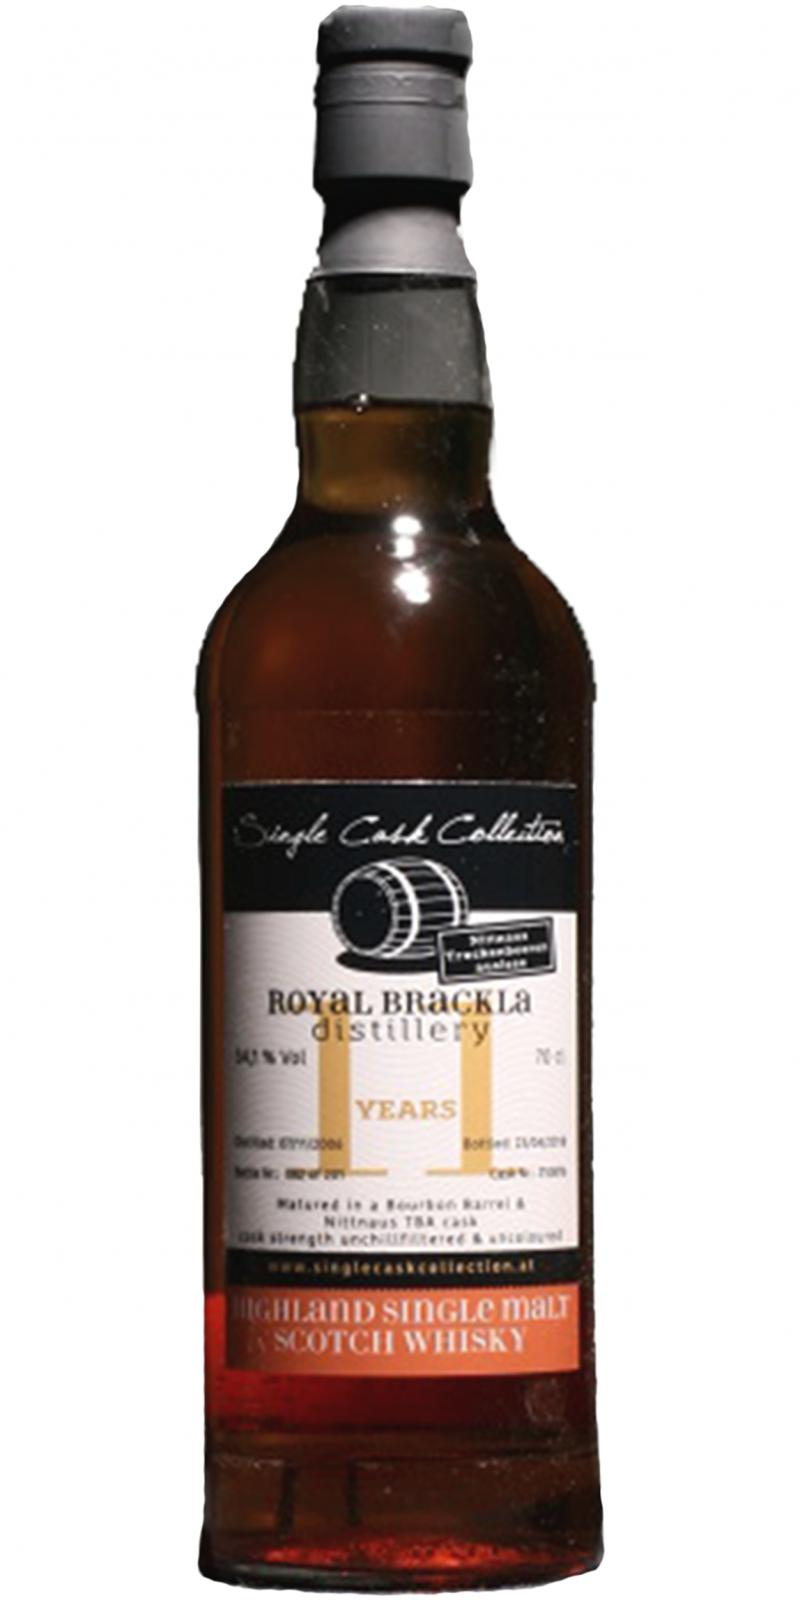 Royal Brackla 2006 SCC